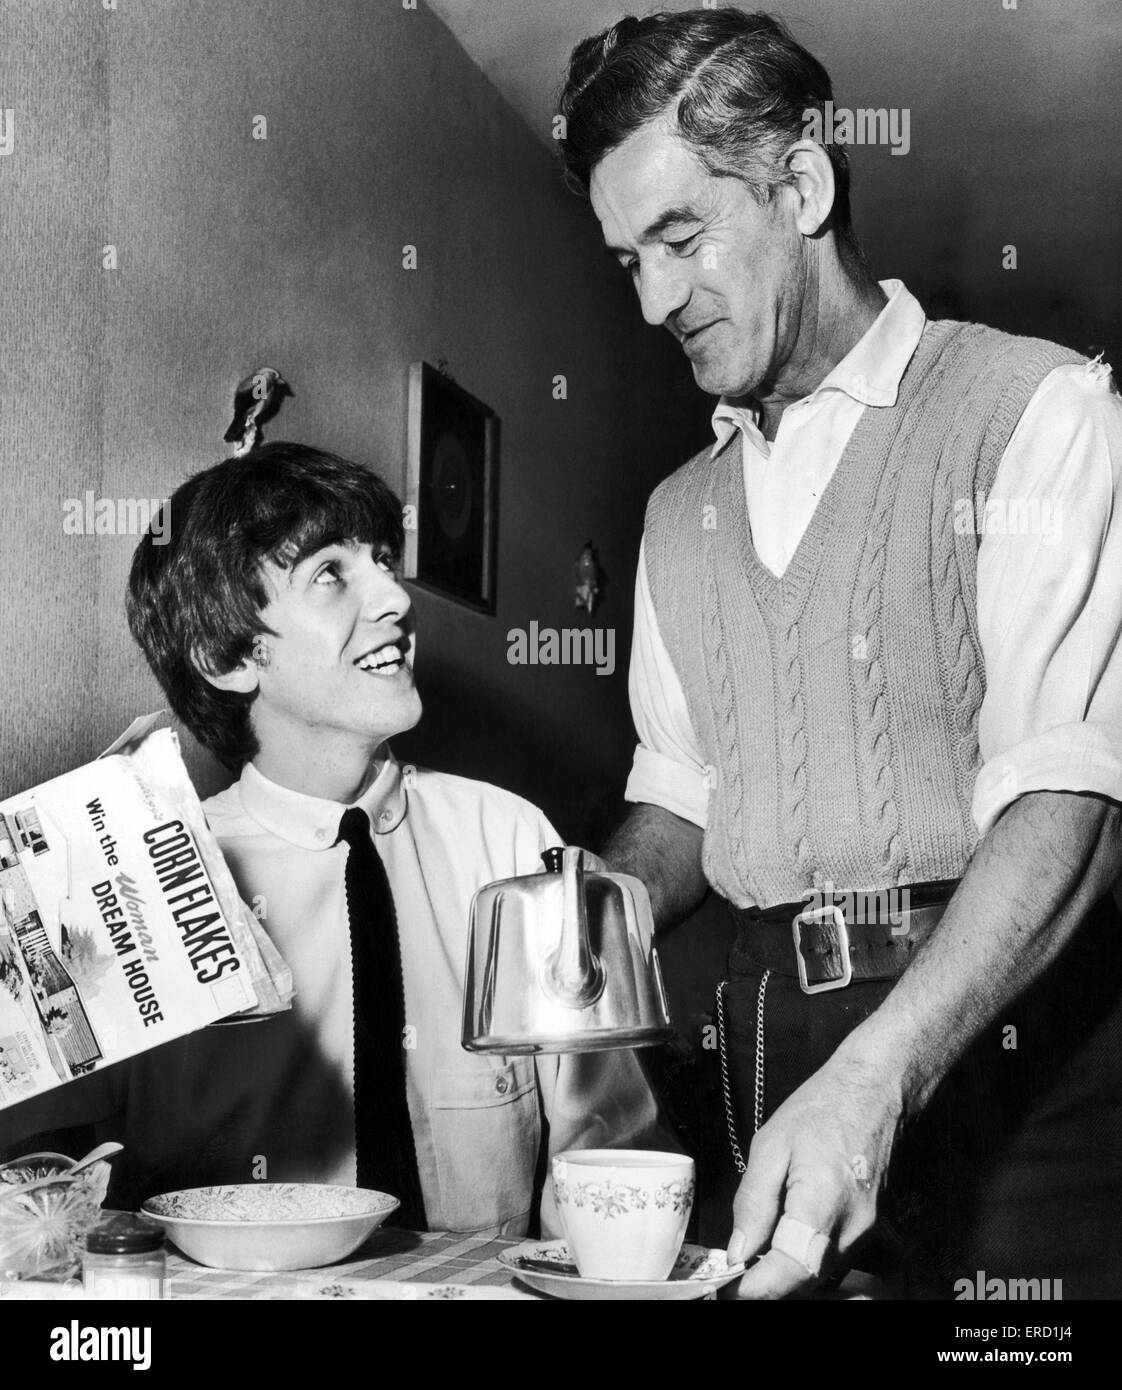 George Harrison Sits Down To Breakfast With His Father Harold Hargreaves At Home In Liverpool Where He Returned For A Concert The Empire